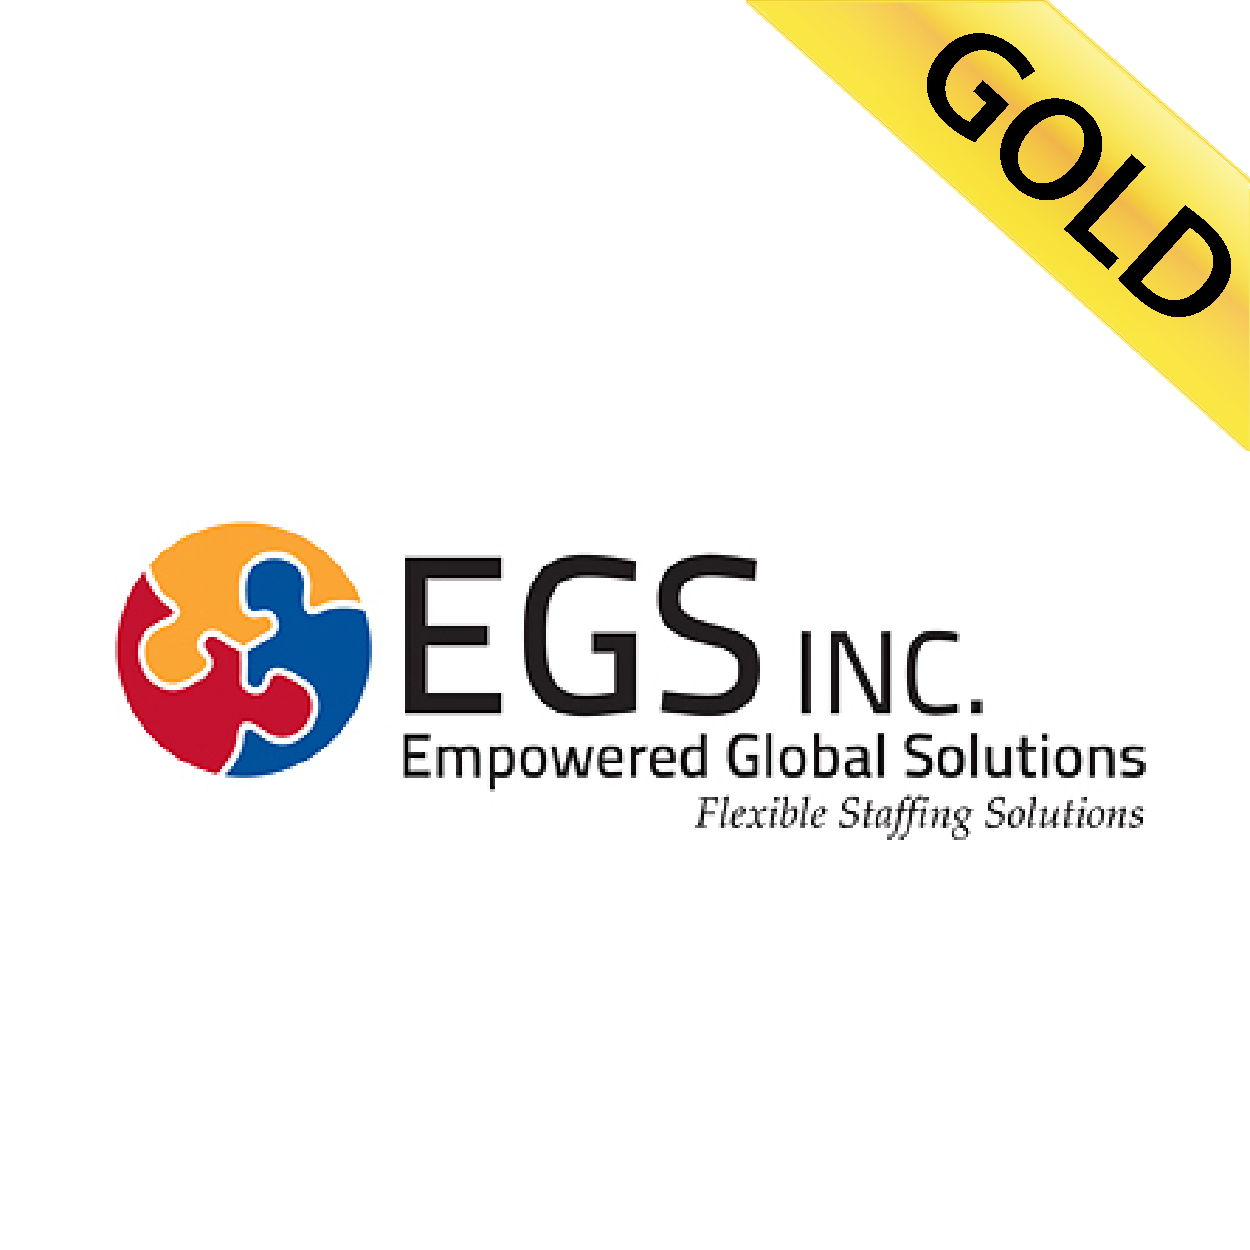 Empowered Global Solutions